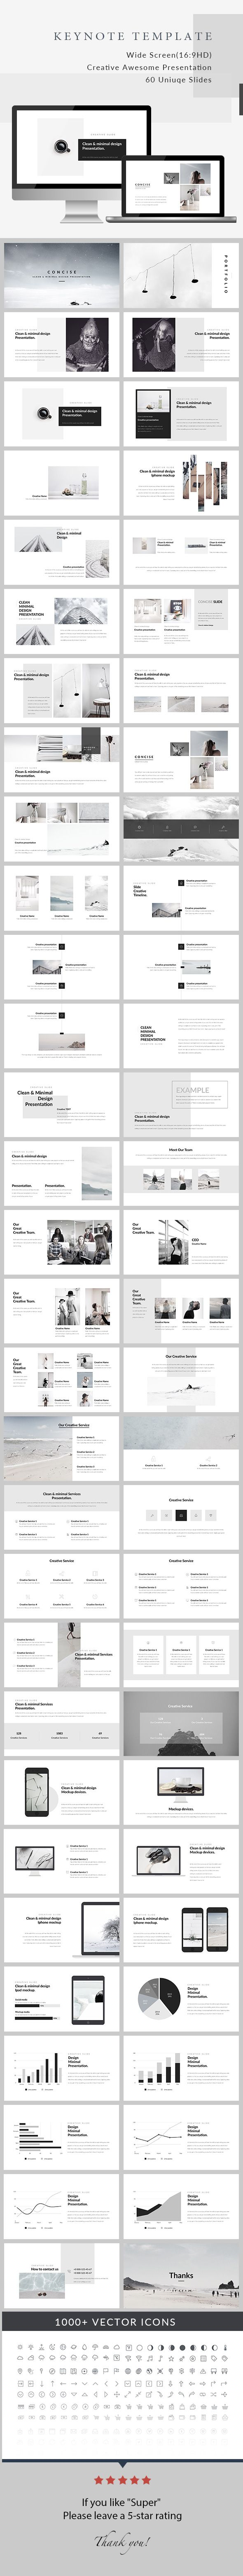 Concise - Minimal Keynote Presentation - Creative Keynote Templates